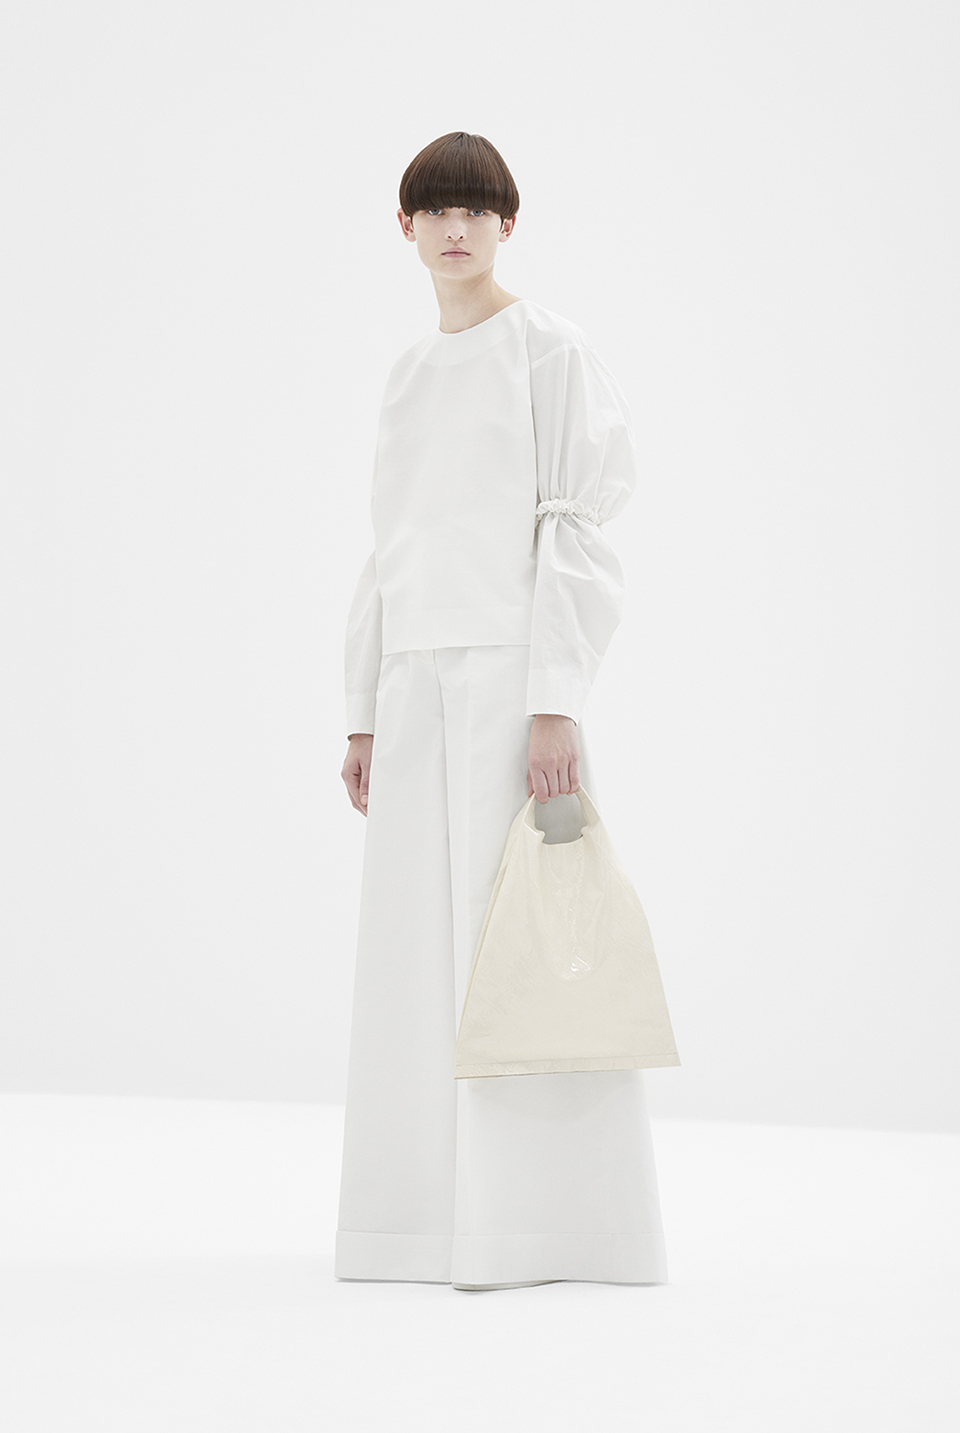 cos_ss18_womens_look_6-copia